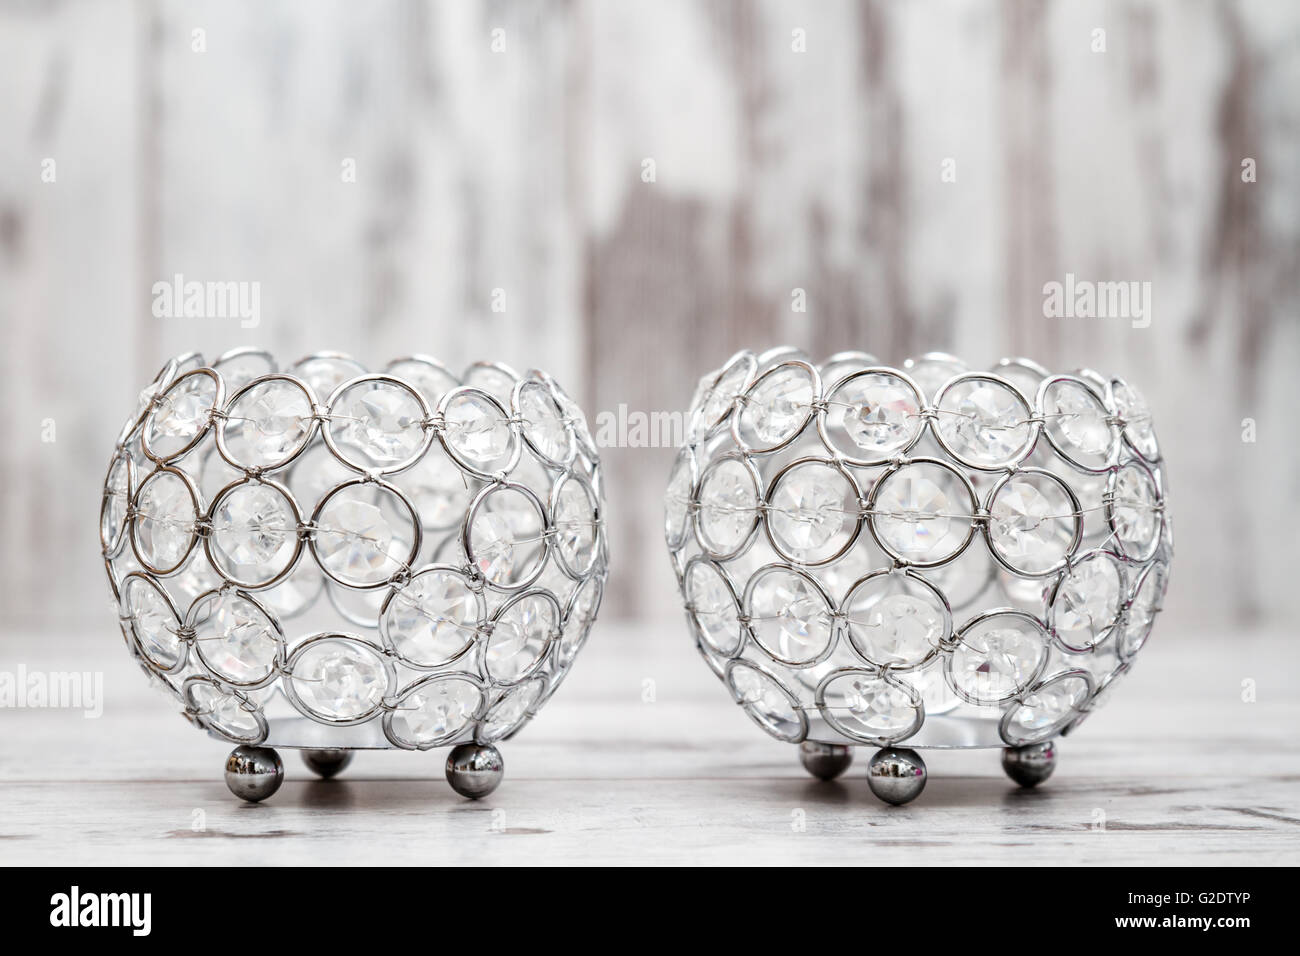 Candle holders with crystals on white wooden background - Stock Image